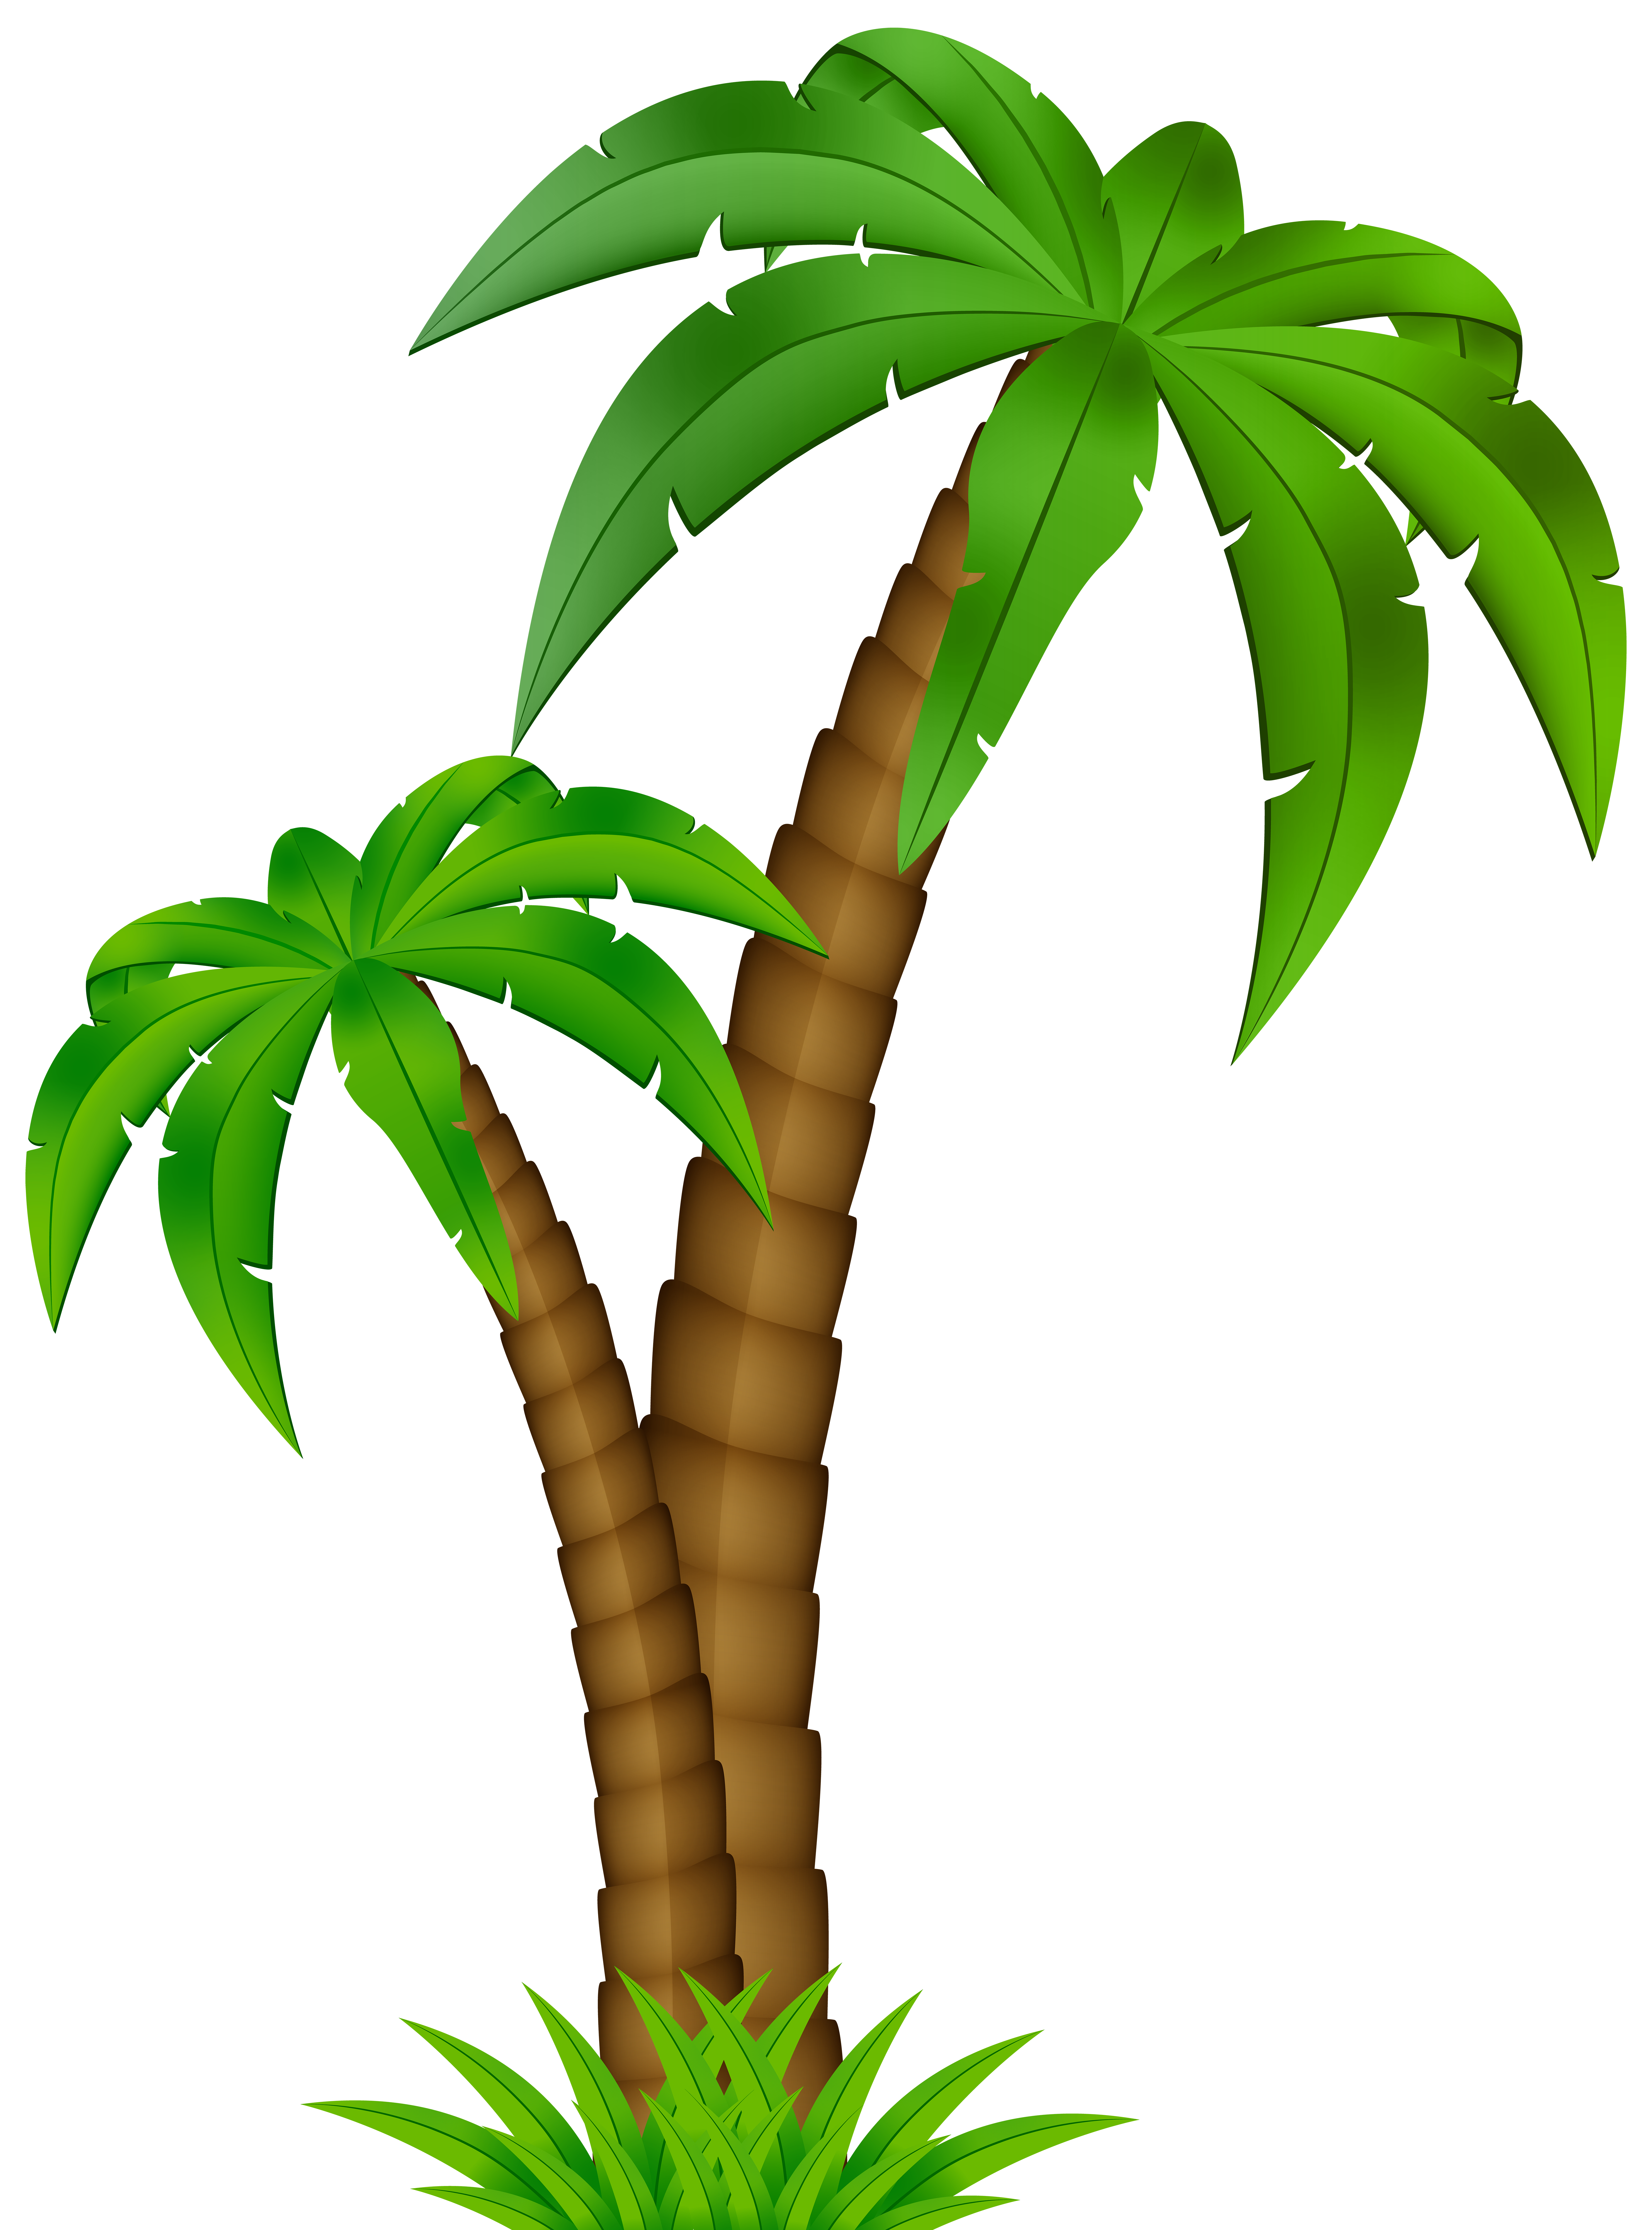 Palm clip art image. Tree cartoon png black and white